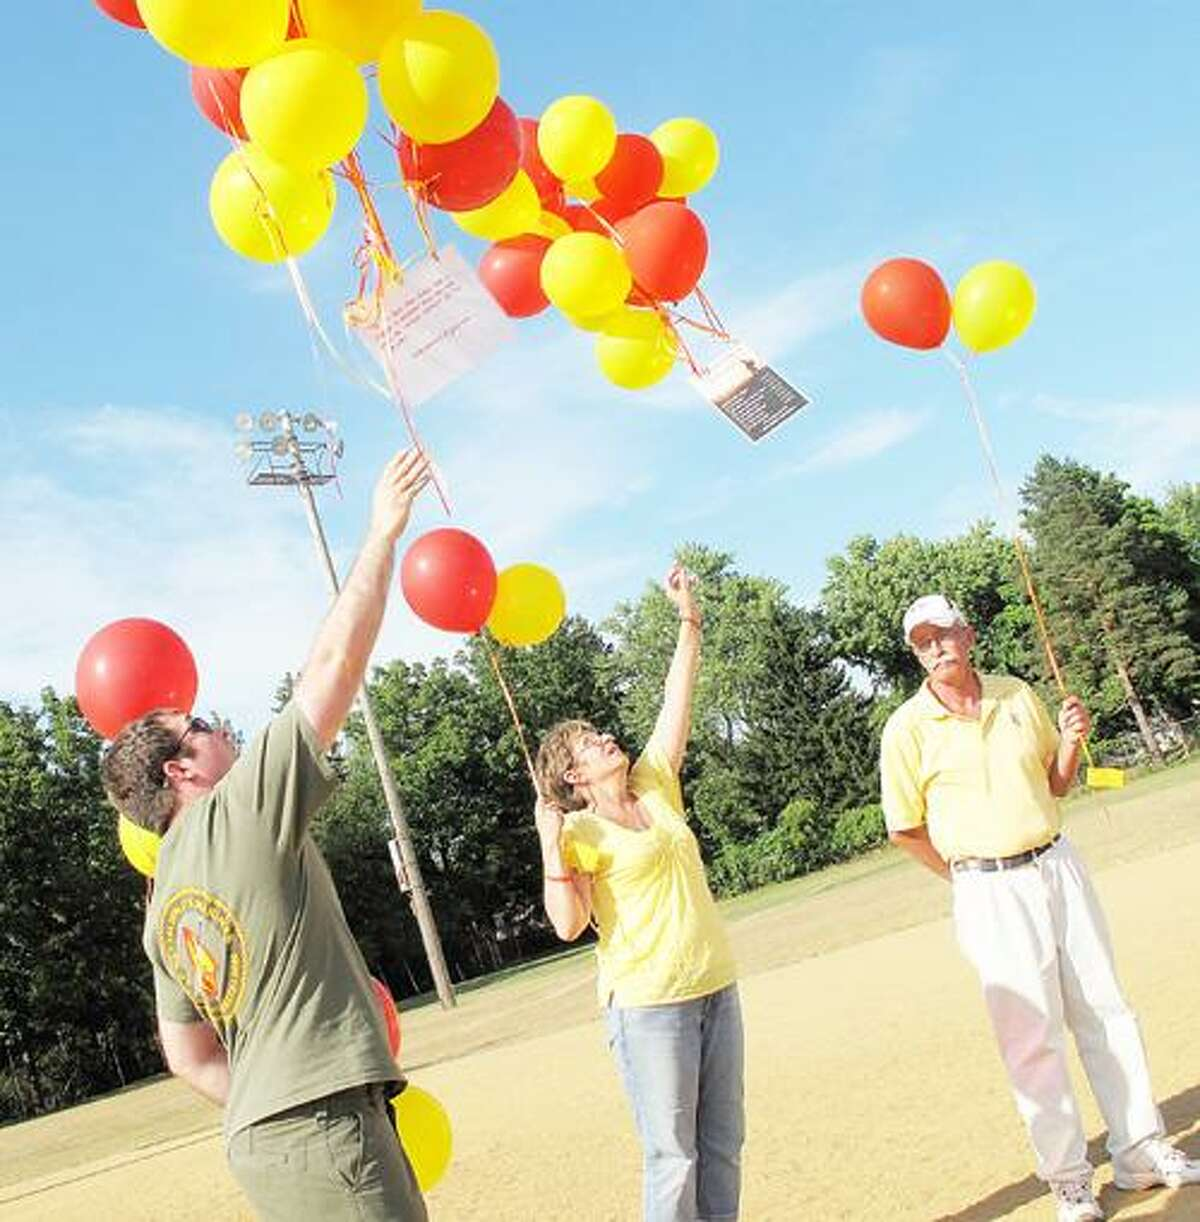 Dispatch Staff Photo by JOHN HAEGER (Twitter.com/OneidaPhoto) Vicky Arnold,center, and Kyle Castle release balloons on Saturday in Oneida in remembrance of Lance Cpl. Jeremy Lasher and fellow U.S. Marines who were killed in the line of duty. Lasher was killed in action in Afghanistan July 23, 2009.